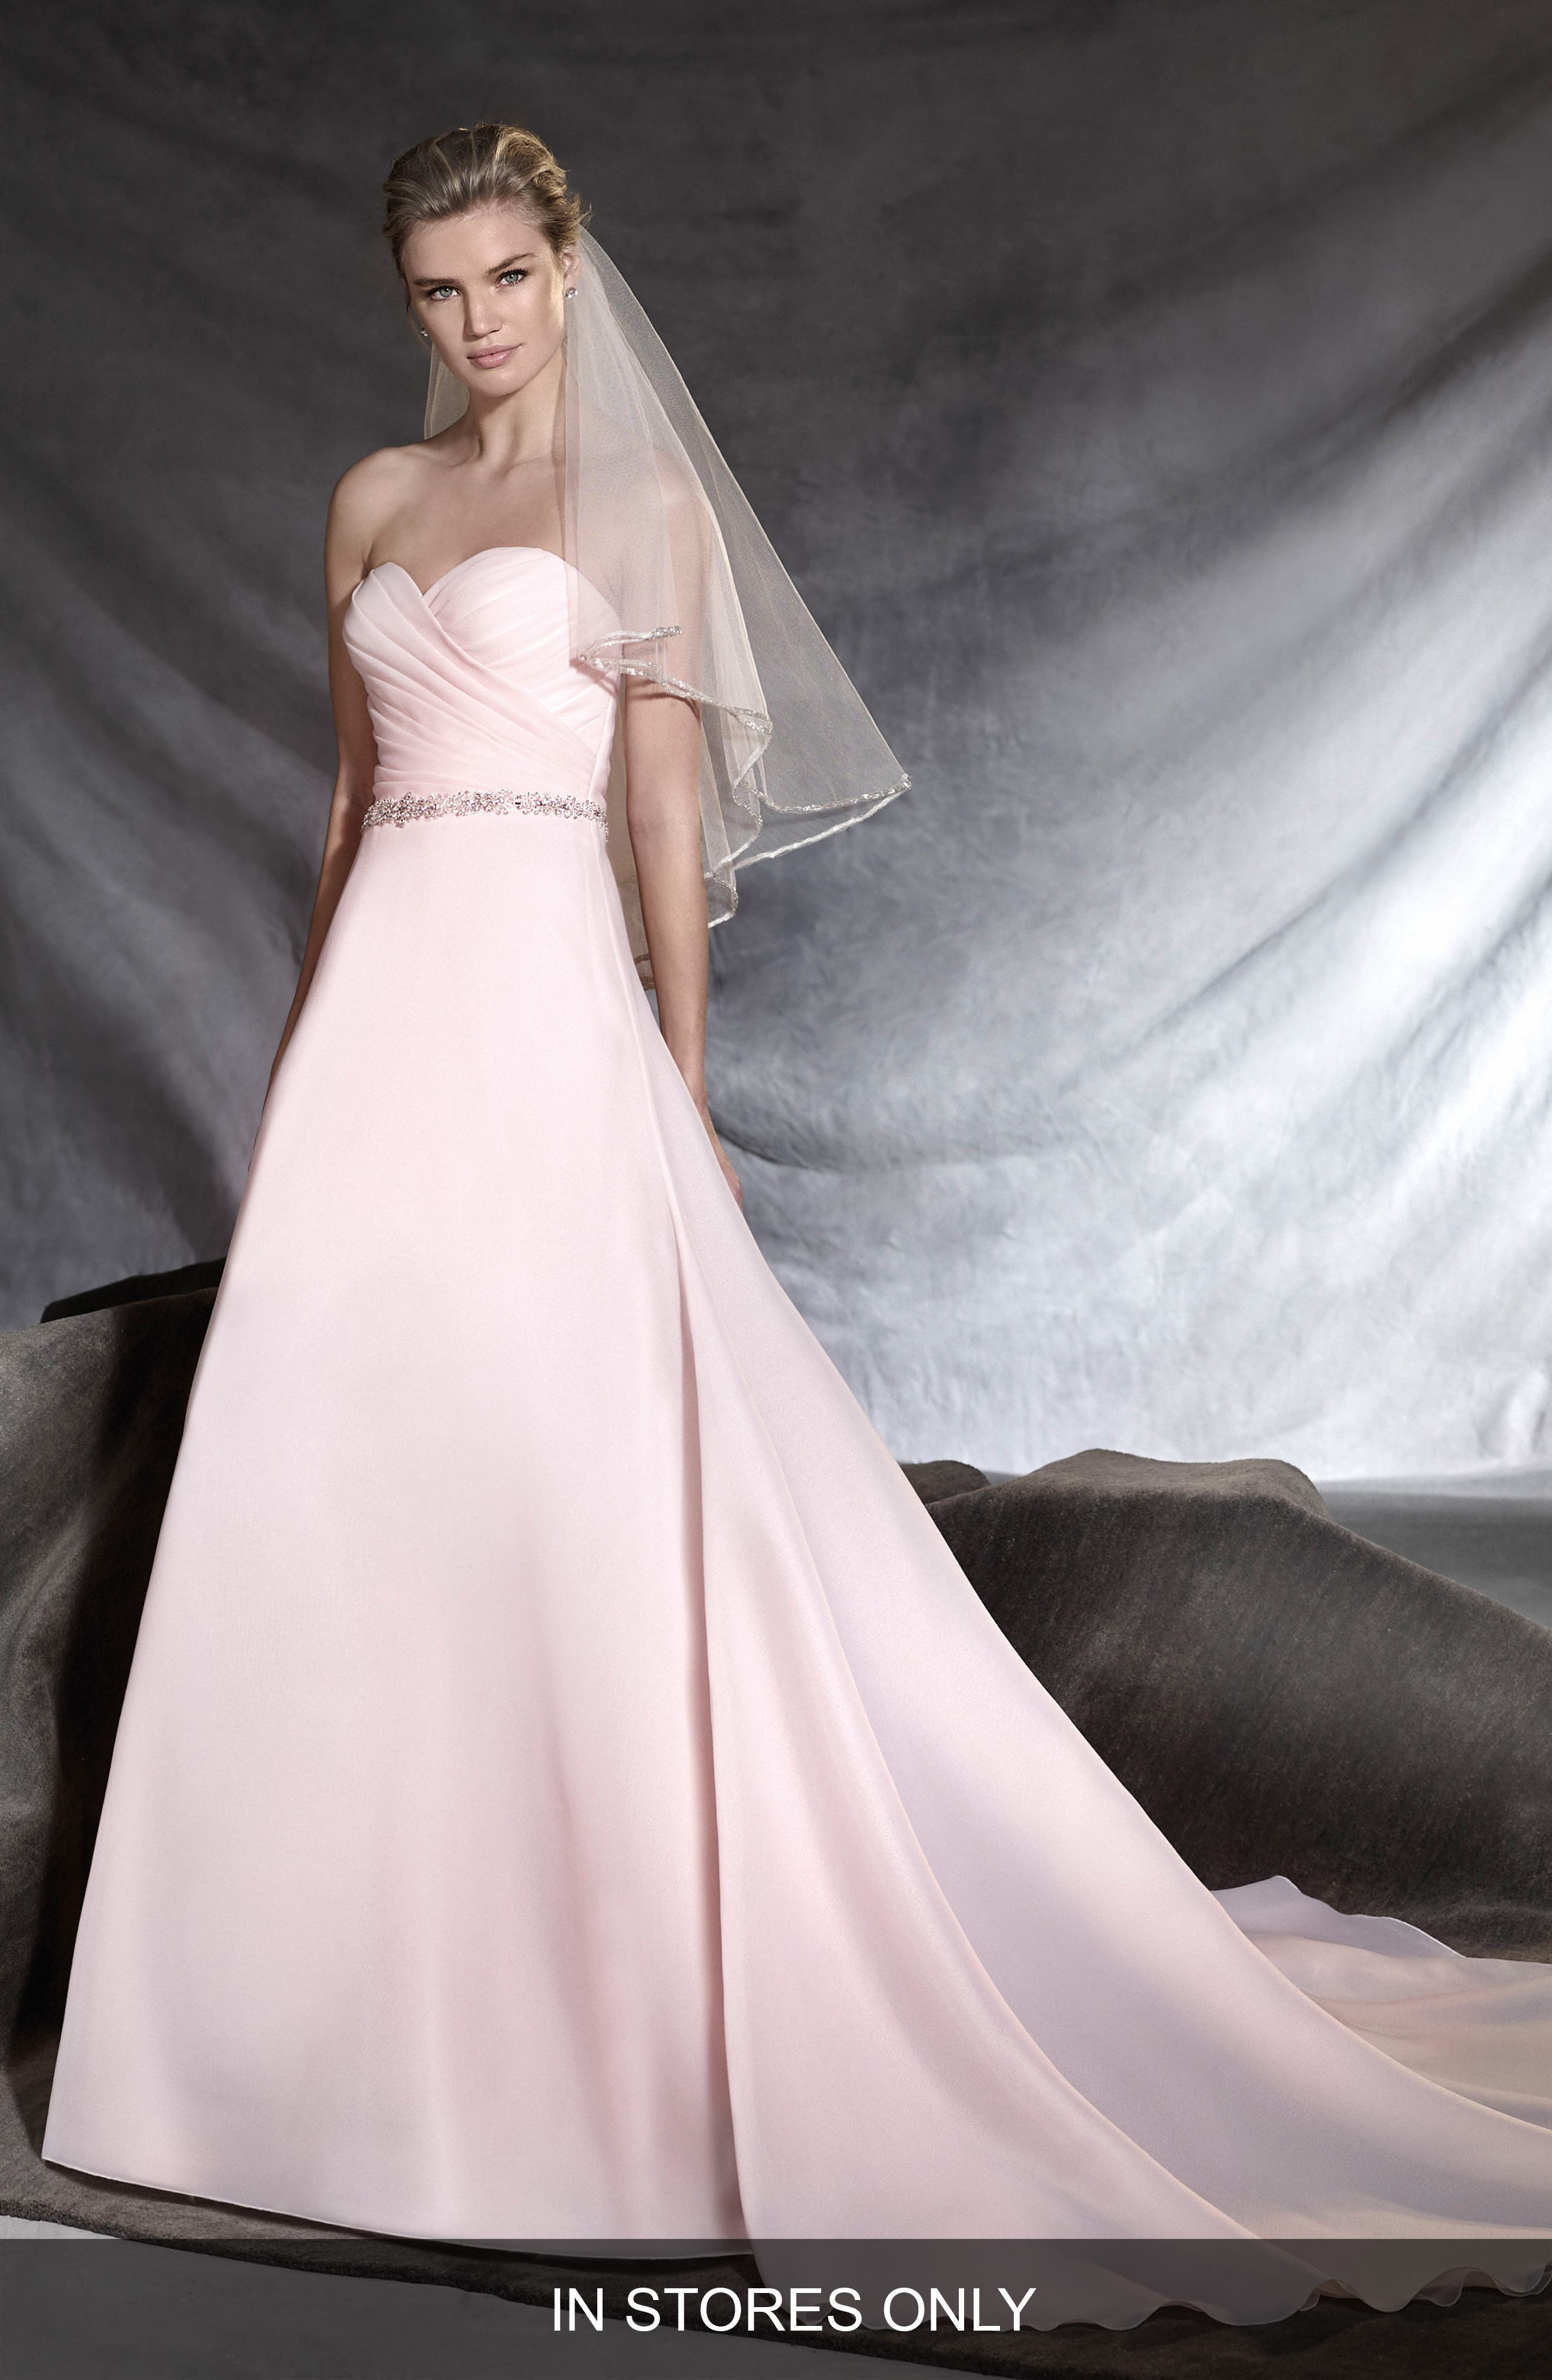 Ortuella Strapless Chiffon A-Line Gown,                             Alternate thumbnail 2, color,                             650